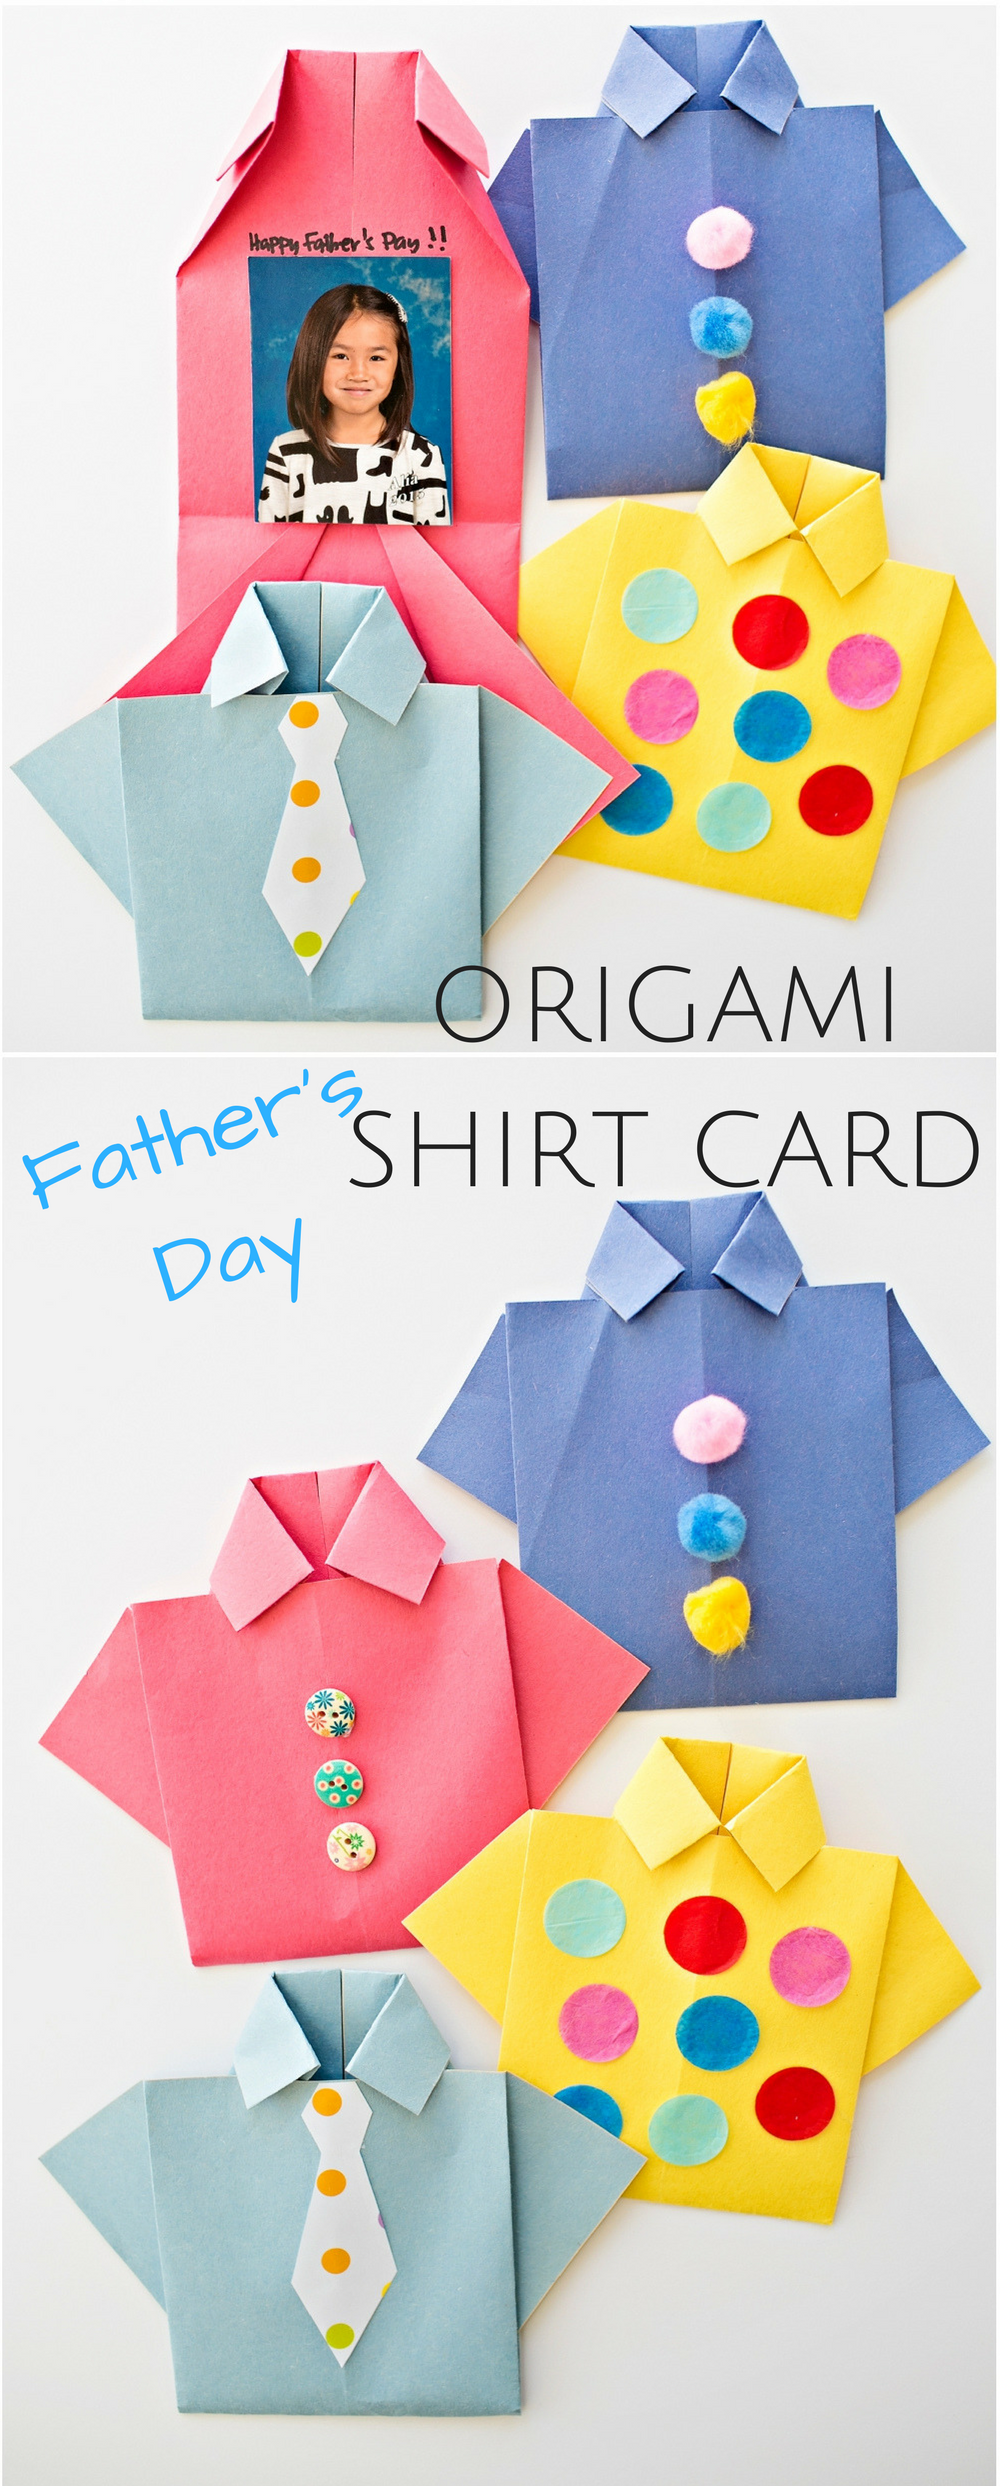 39b10656 @rabbitgooing Easy Origami Father's Day Shirt Card. Kids can decorate this  cute card for dad and add a special photo and message inside!